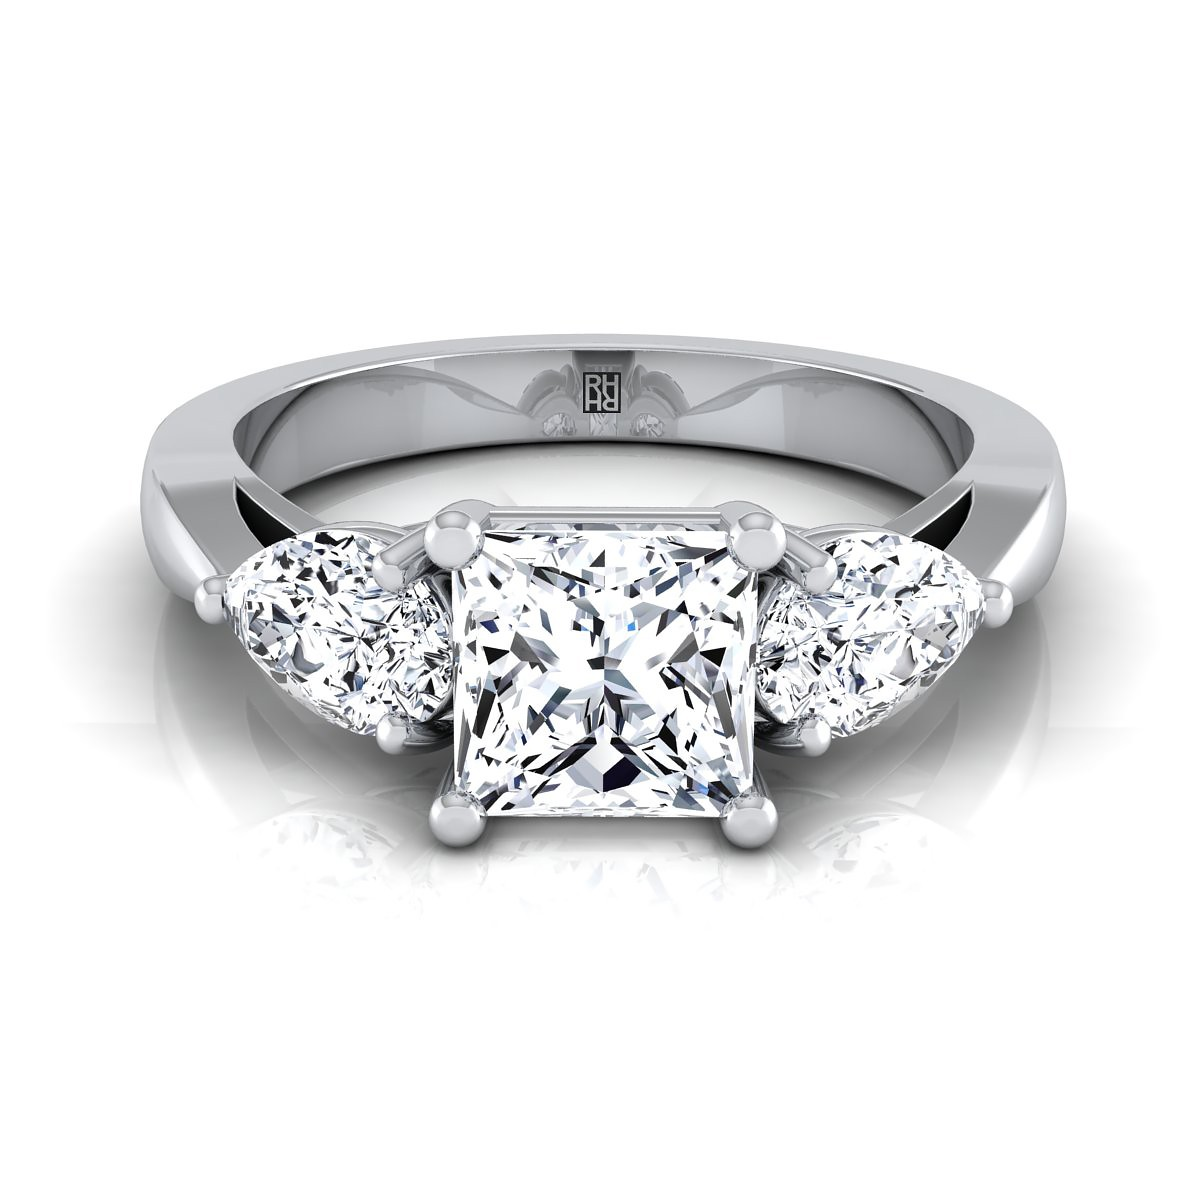 Princess Cut Center With Pear Shape Sides 3 Stone Engagement Ring In 14k  White Gold (1 Ct)